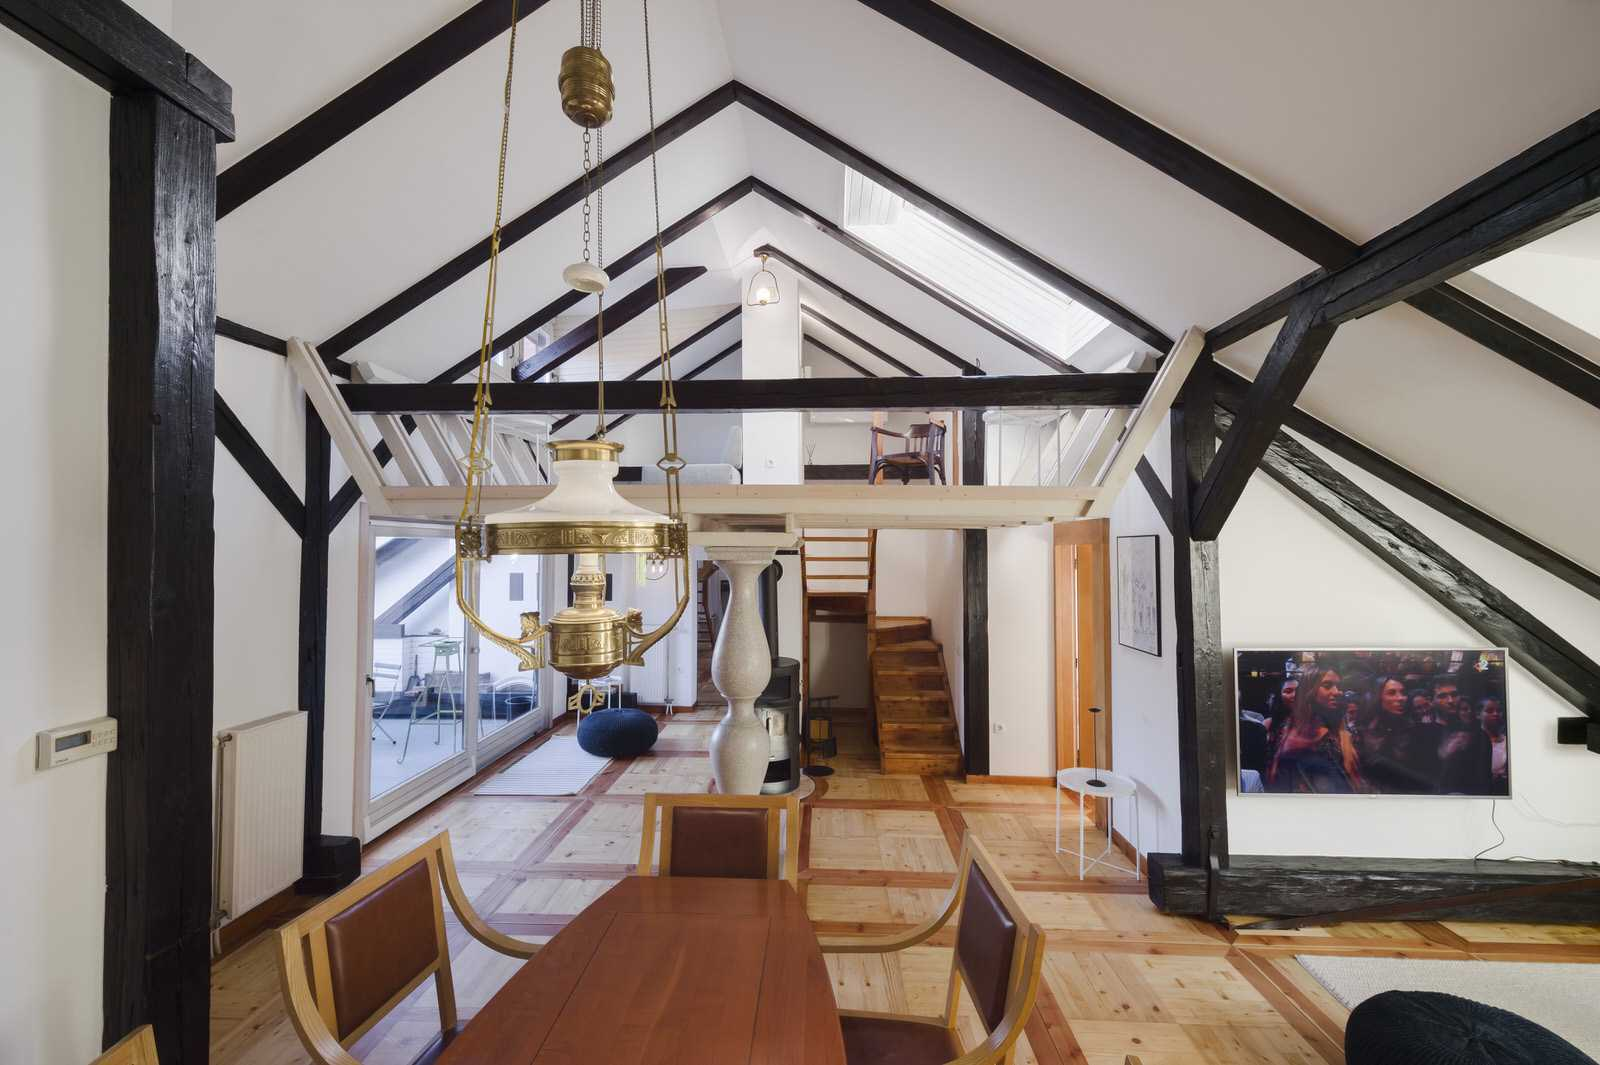 The exposed wood beams add a cozy touch.